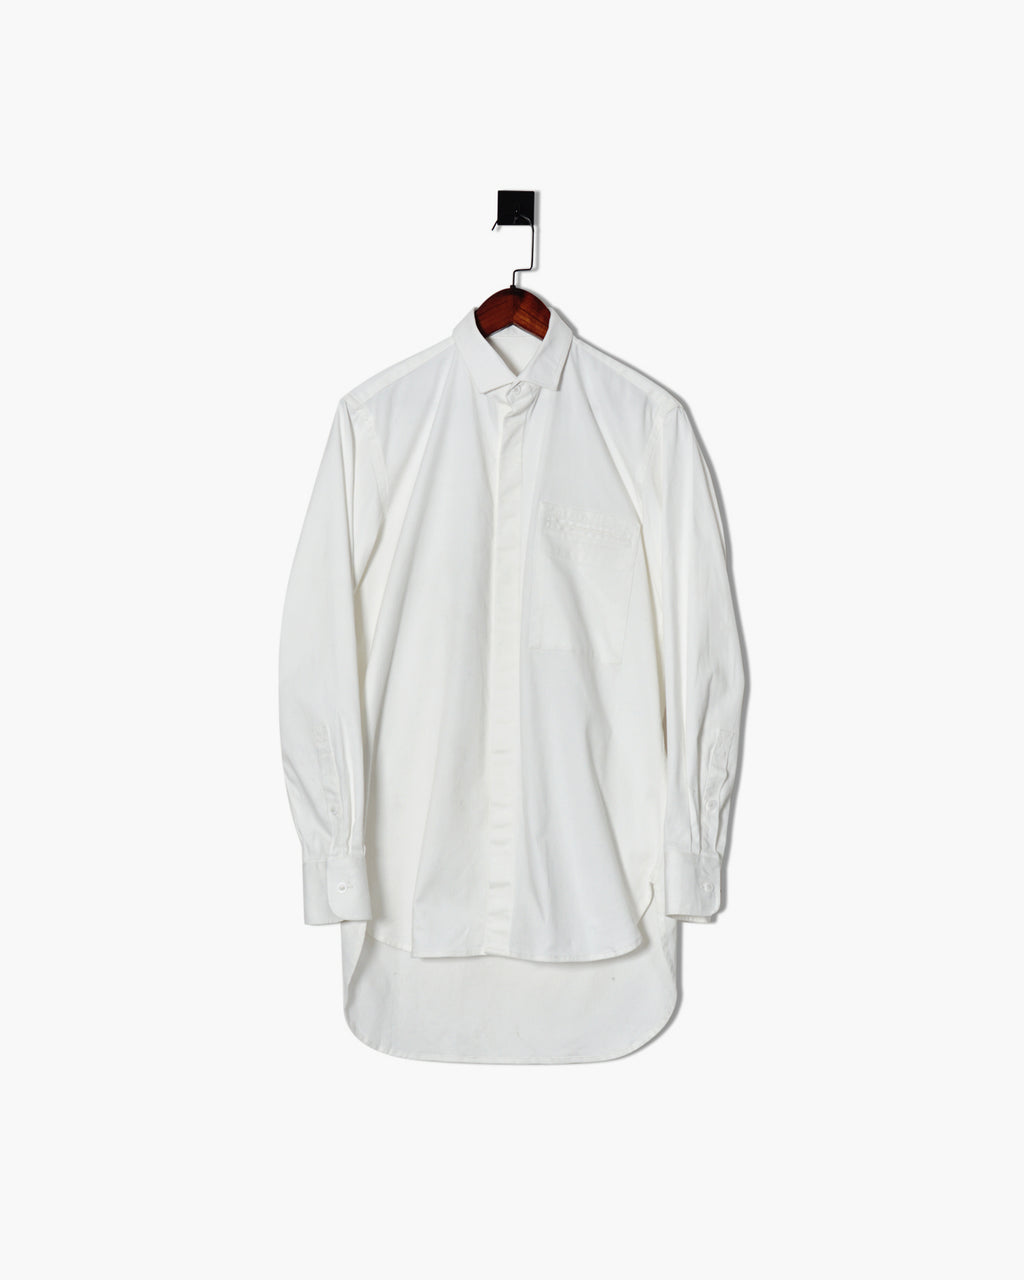 ROSEN Aalto Shirt in Heavy Cotton Twill Sz 2